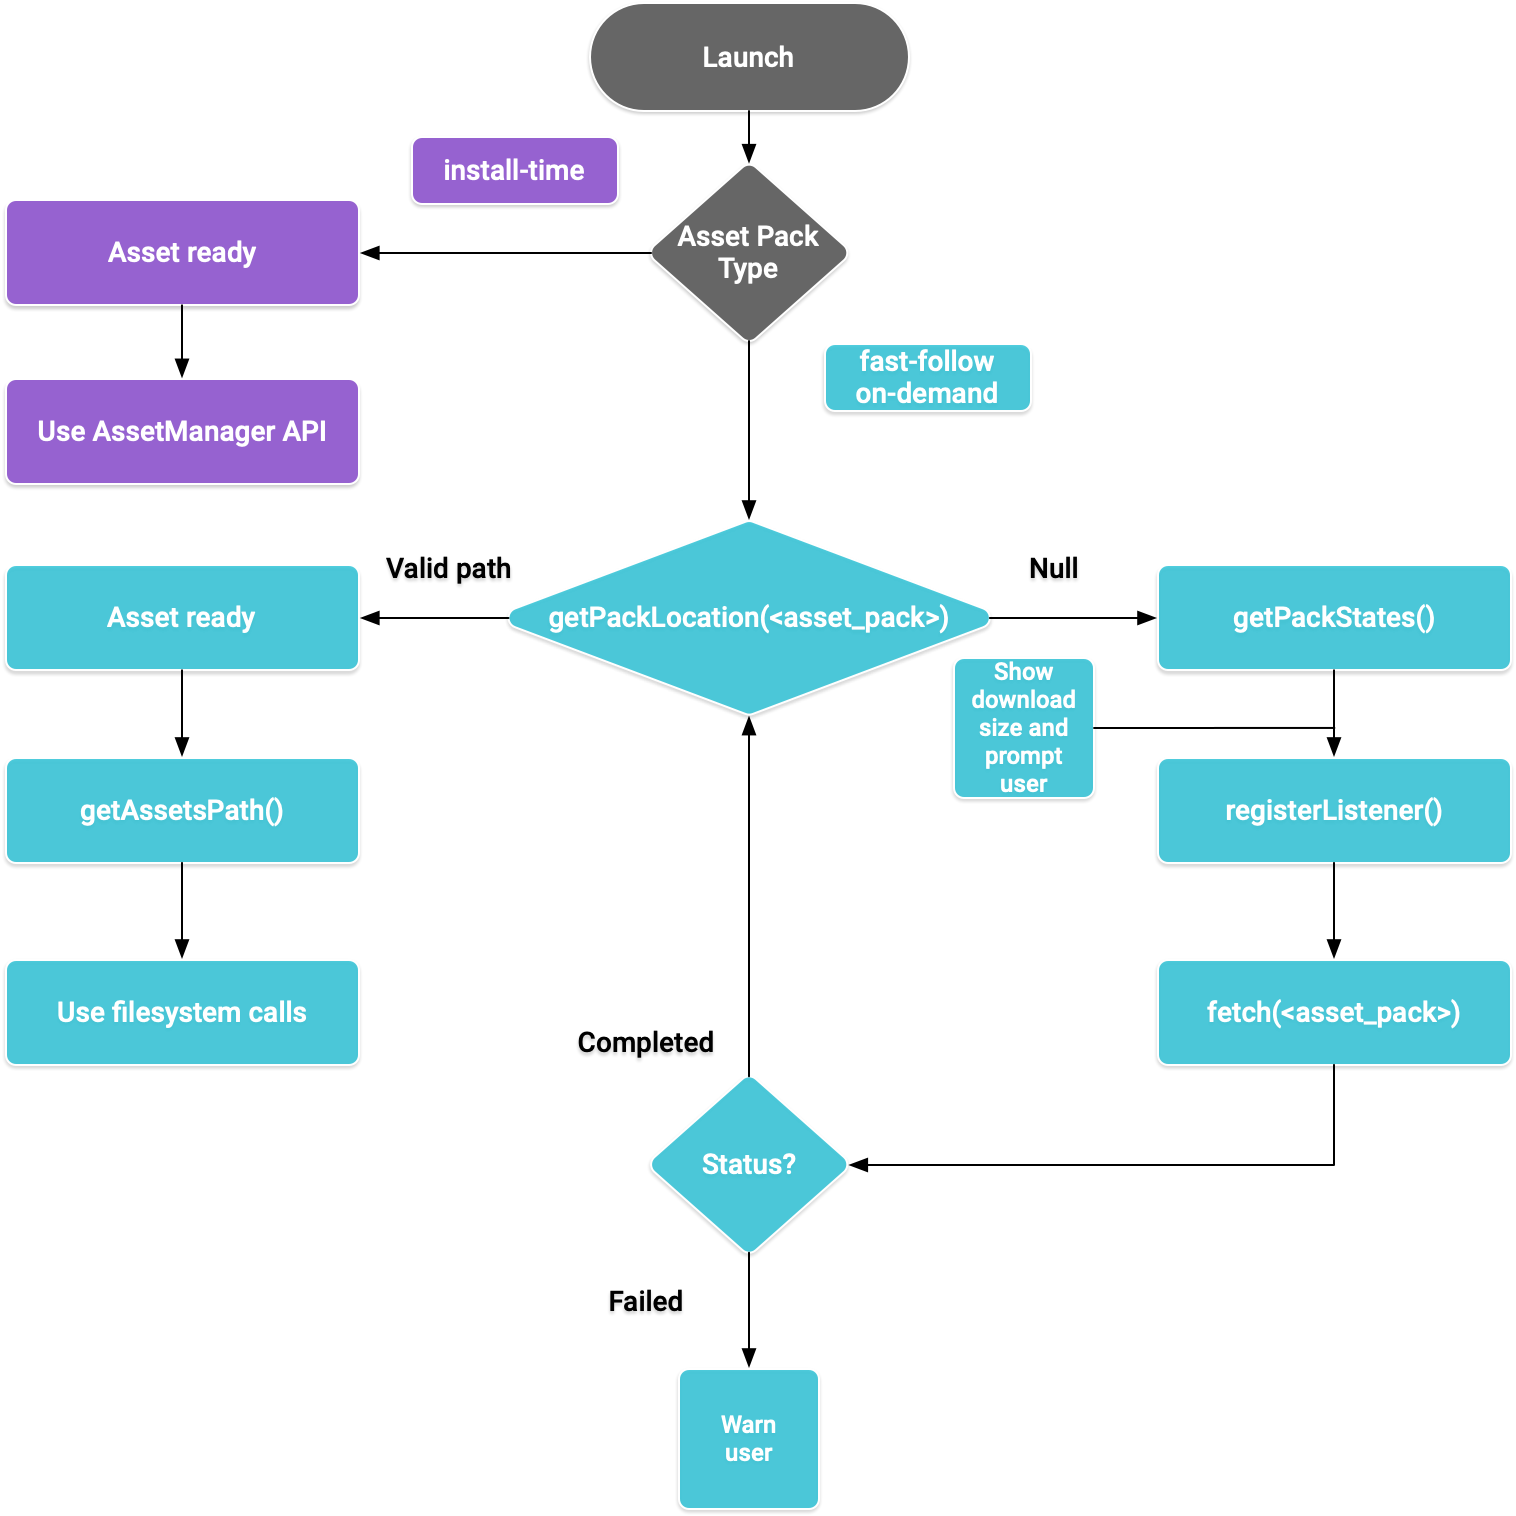 Asset pack flow diagram for the Java programming language